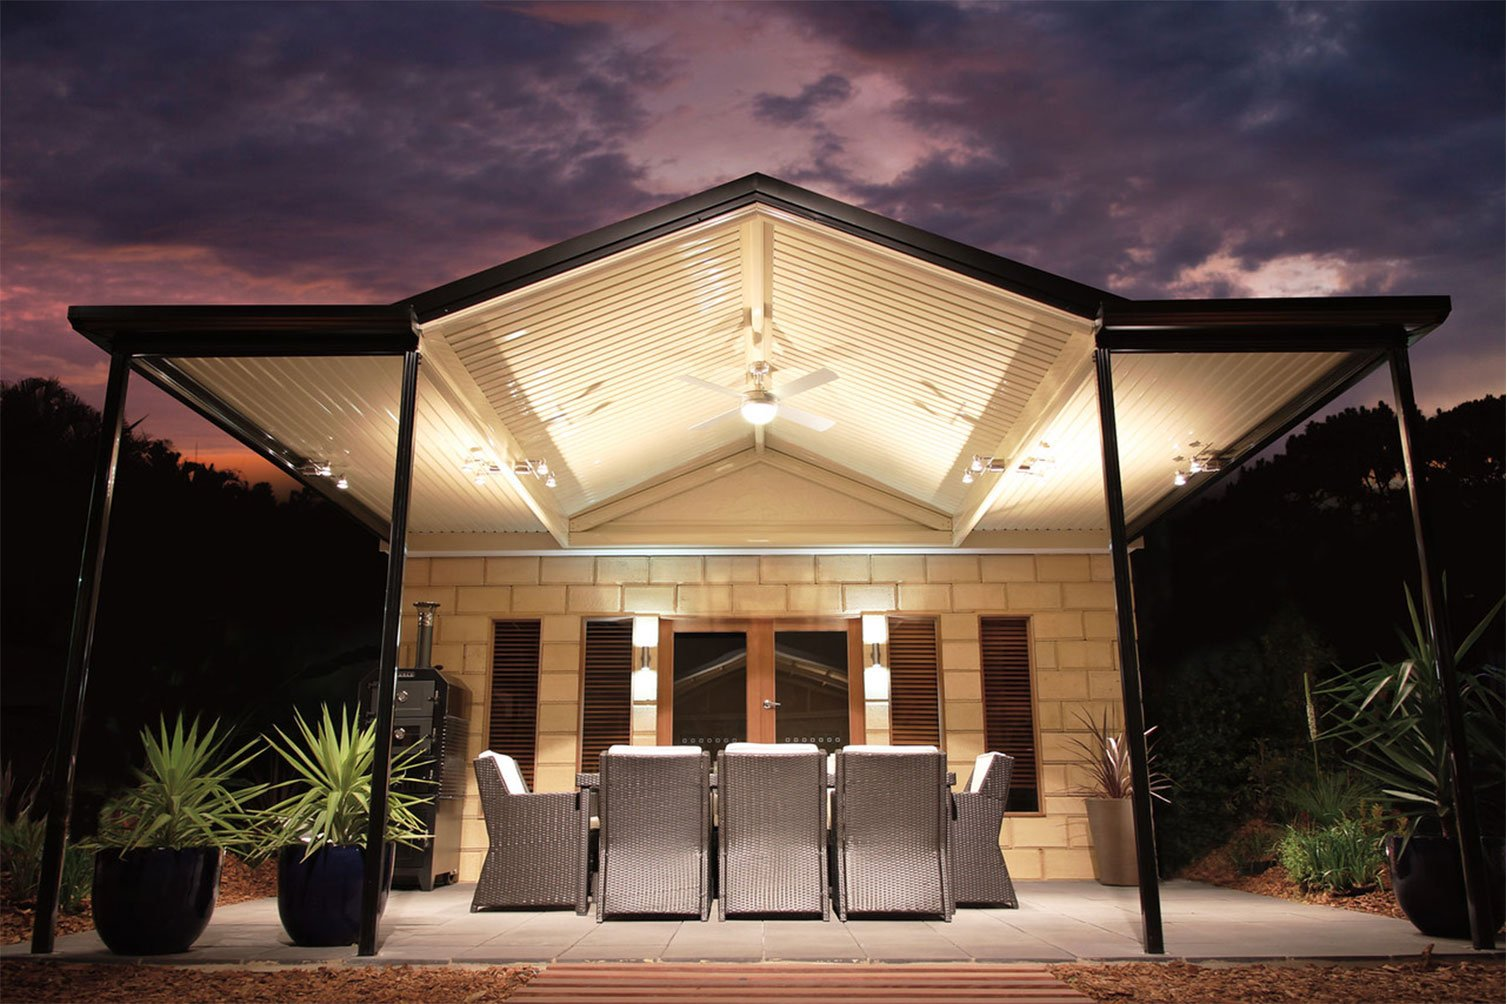 Exceptional sight of the sky after sunset while under a gabled roof patio in Murwillumbah